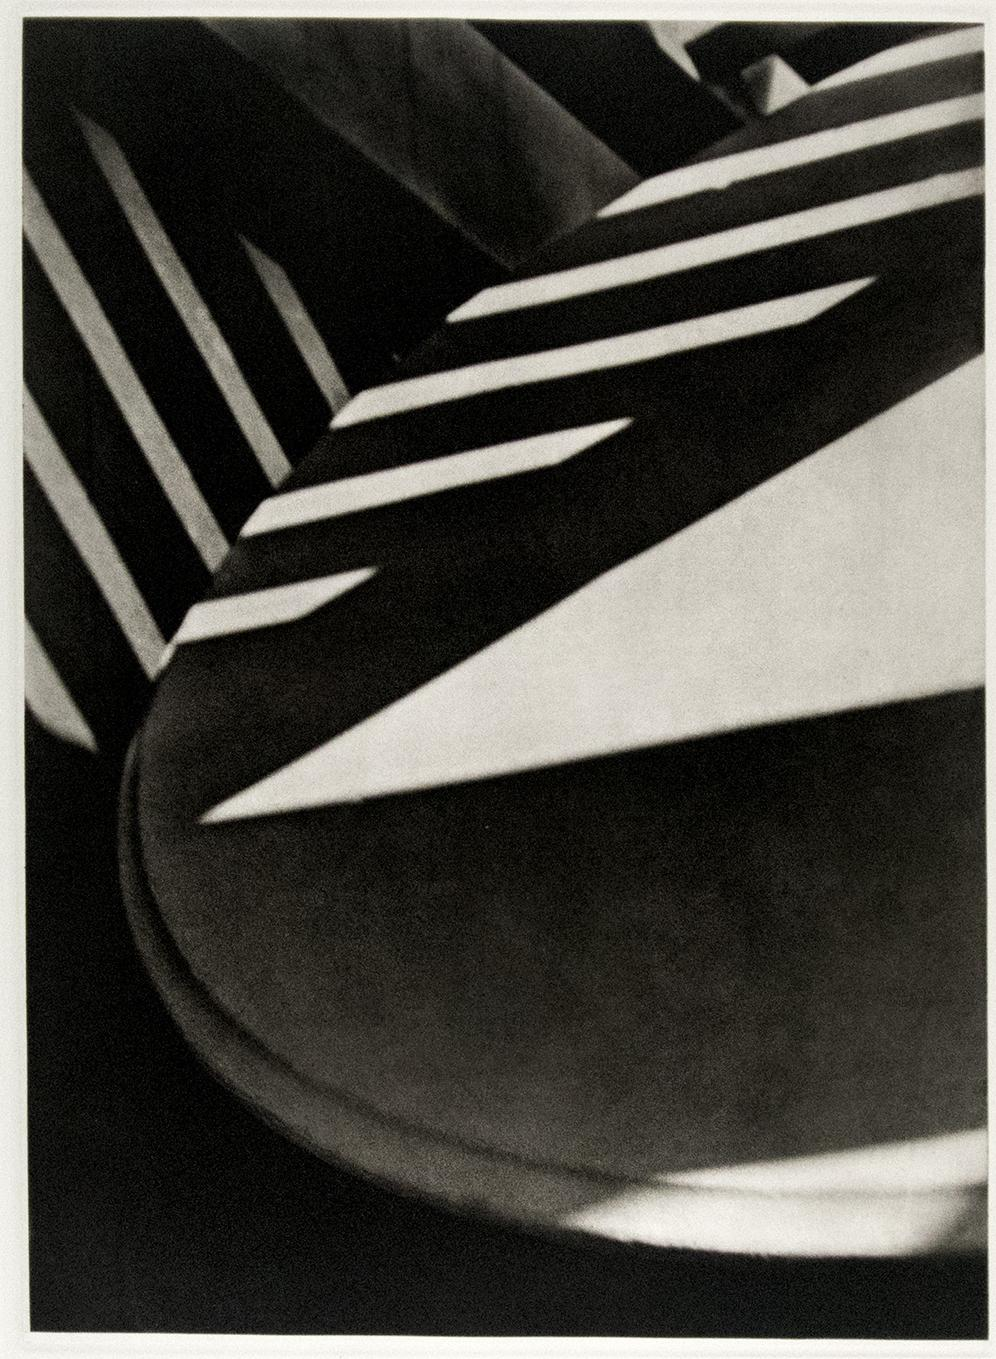 black and white photogravure reproduction by Paul Strand